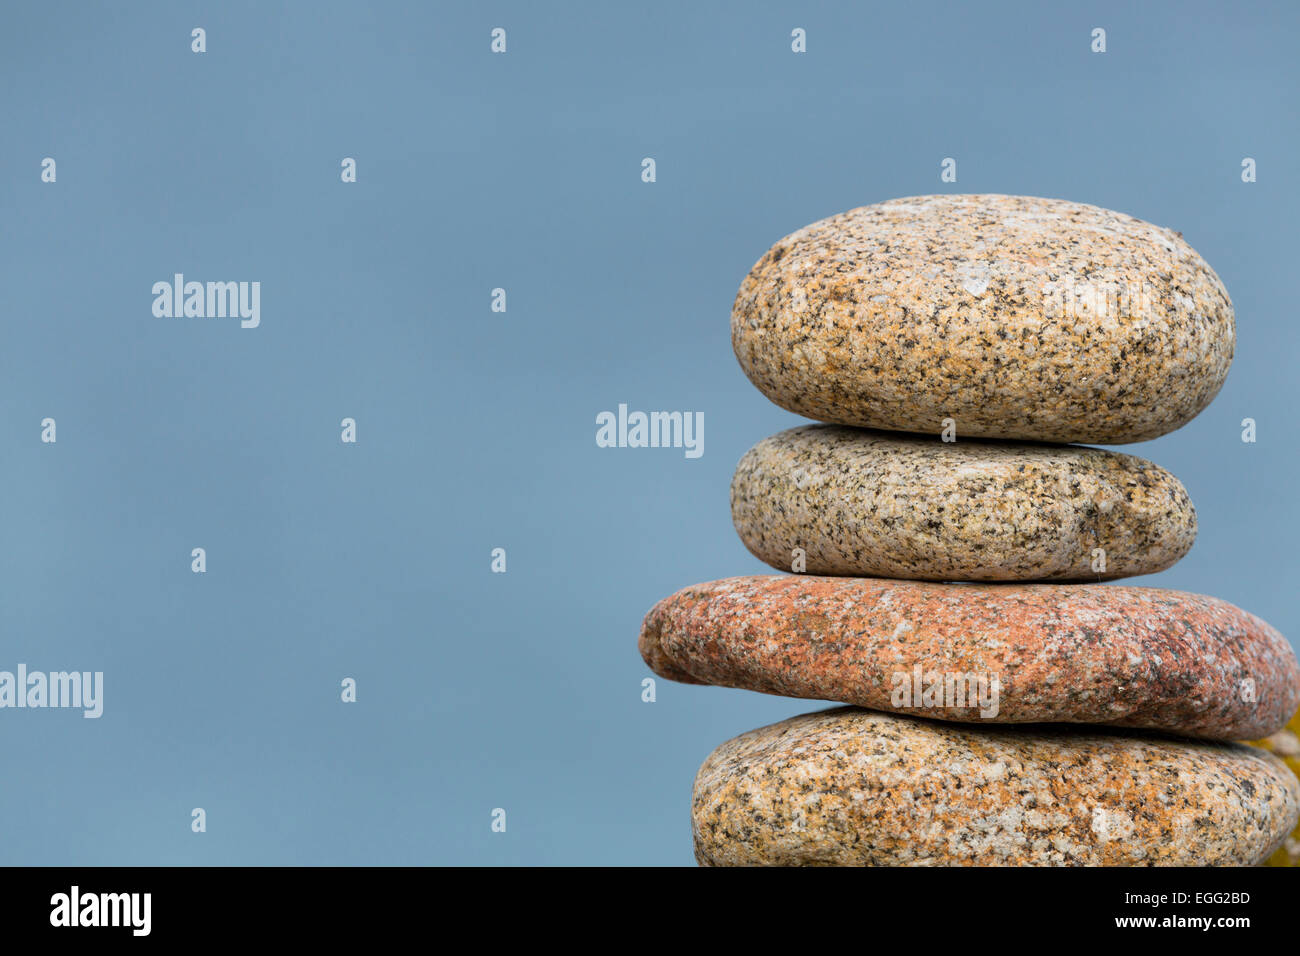 Pile Granite Pebbles Isles of Scilly; UK - Stock Image